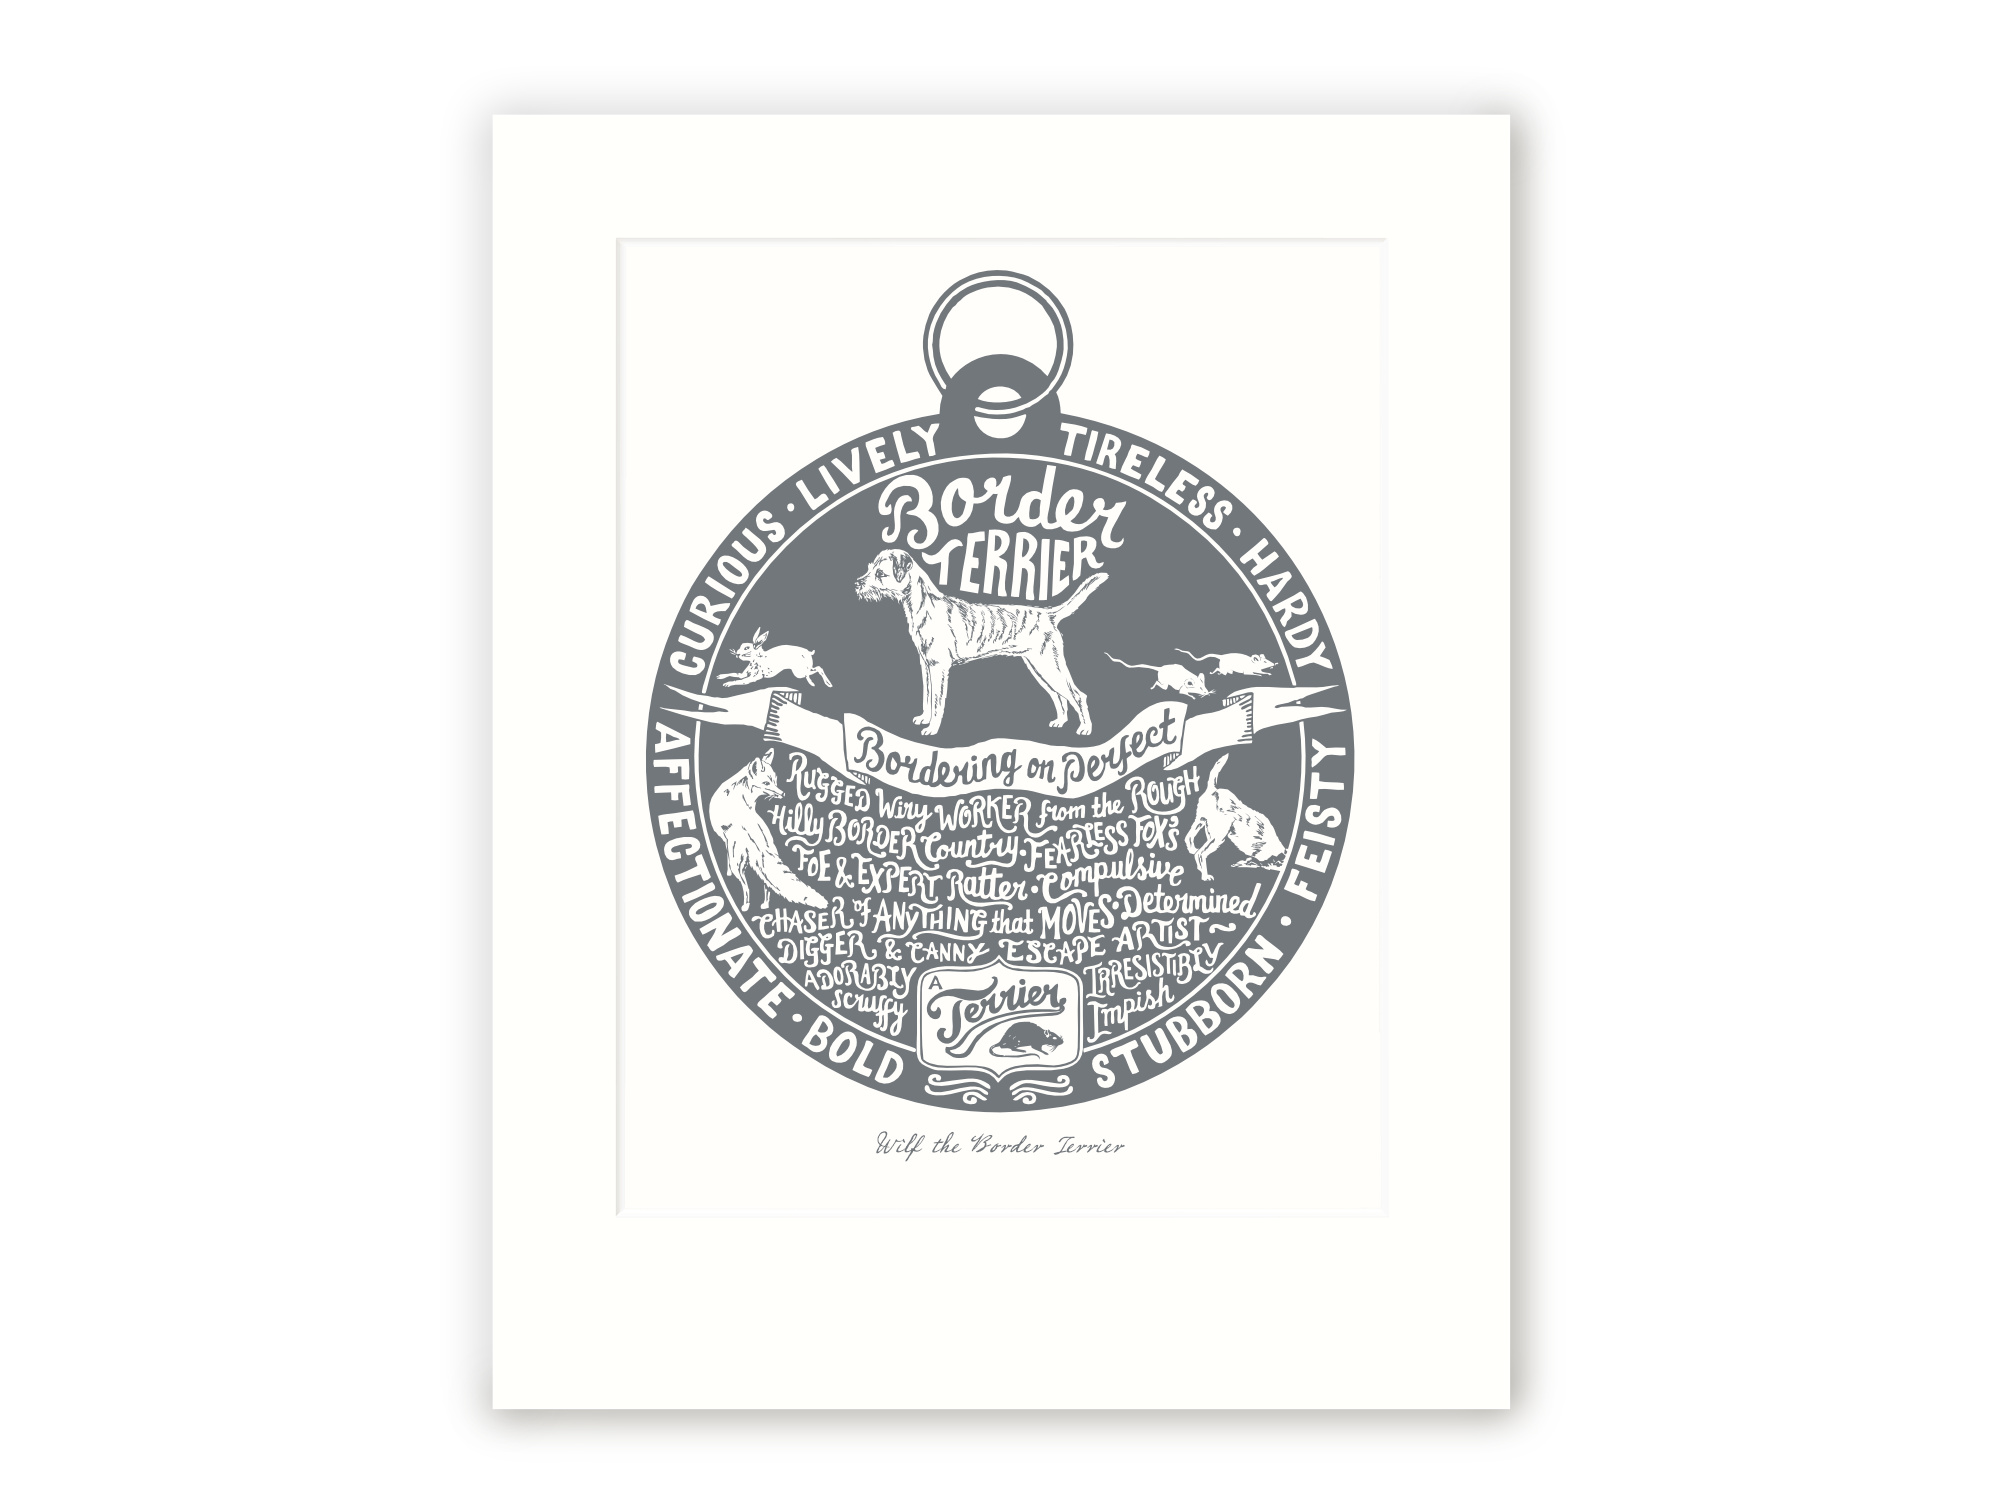 Border Terrier - Personalised Prints for Dog Lovers by The Enlightened Hound